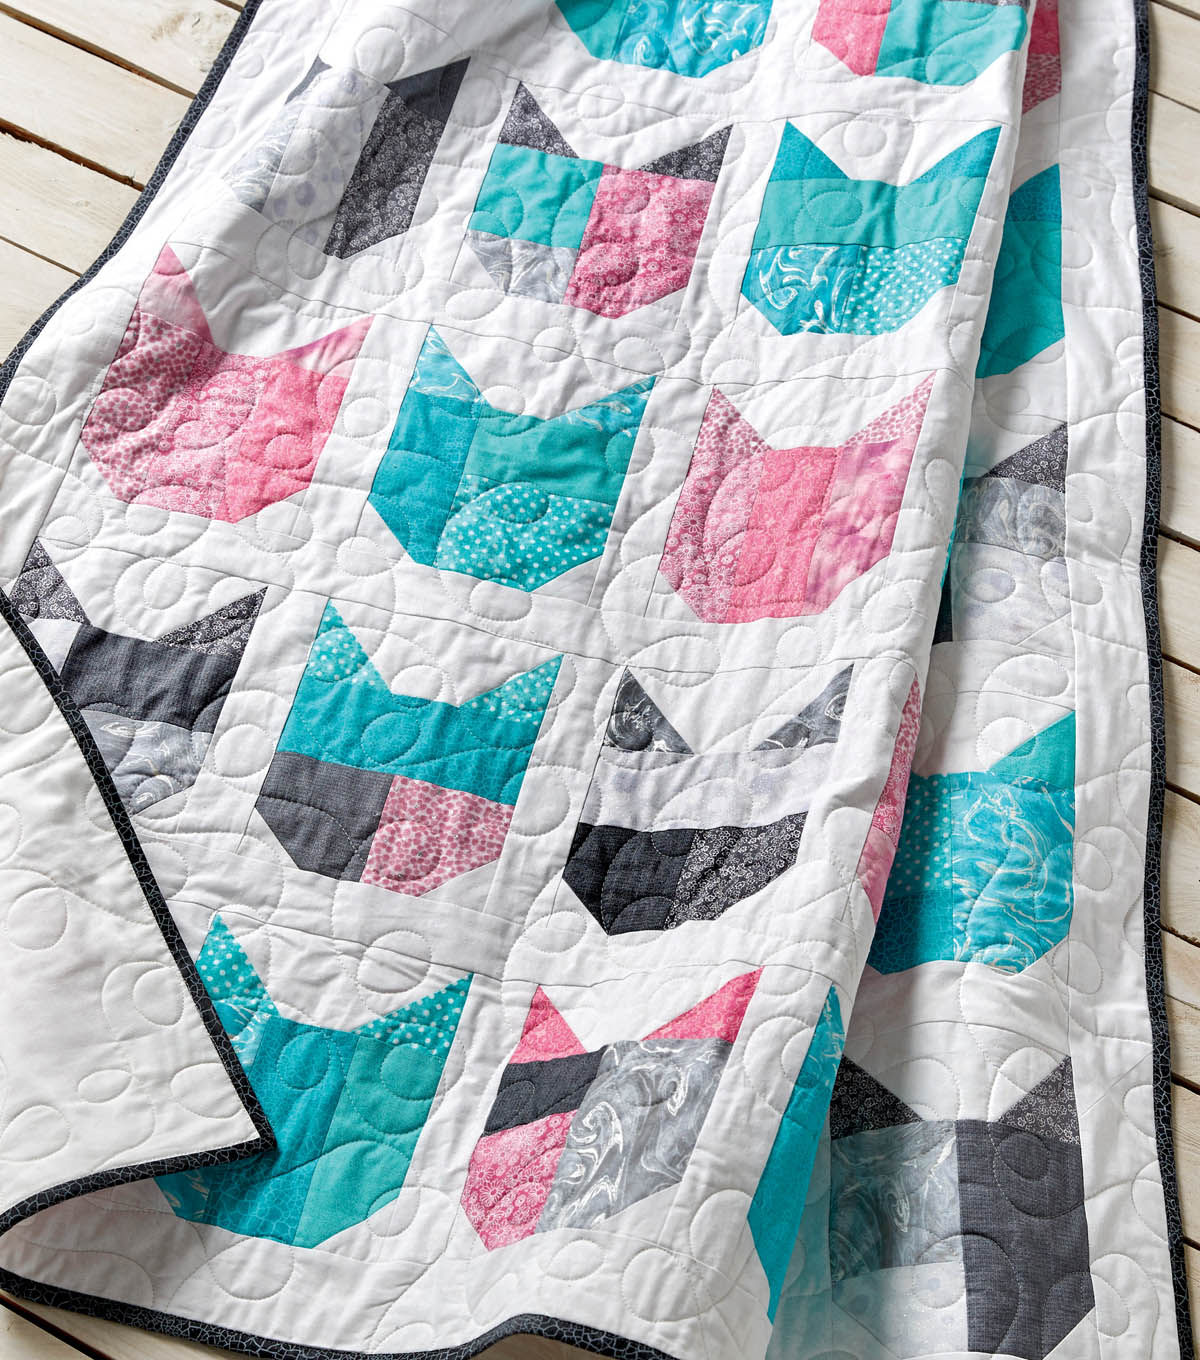 How to Make a Quilt - Quilting 101 - Quilt]